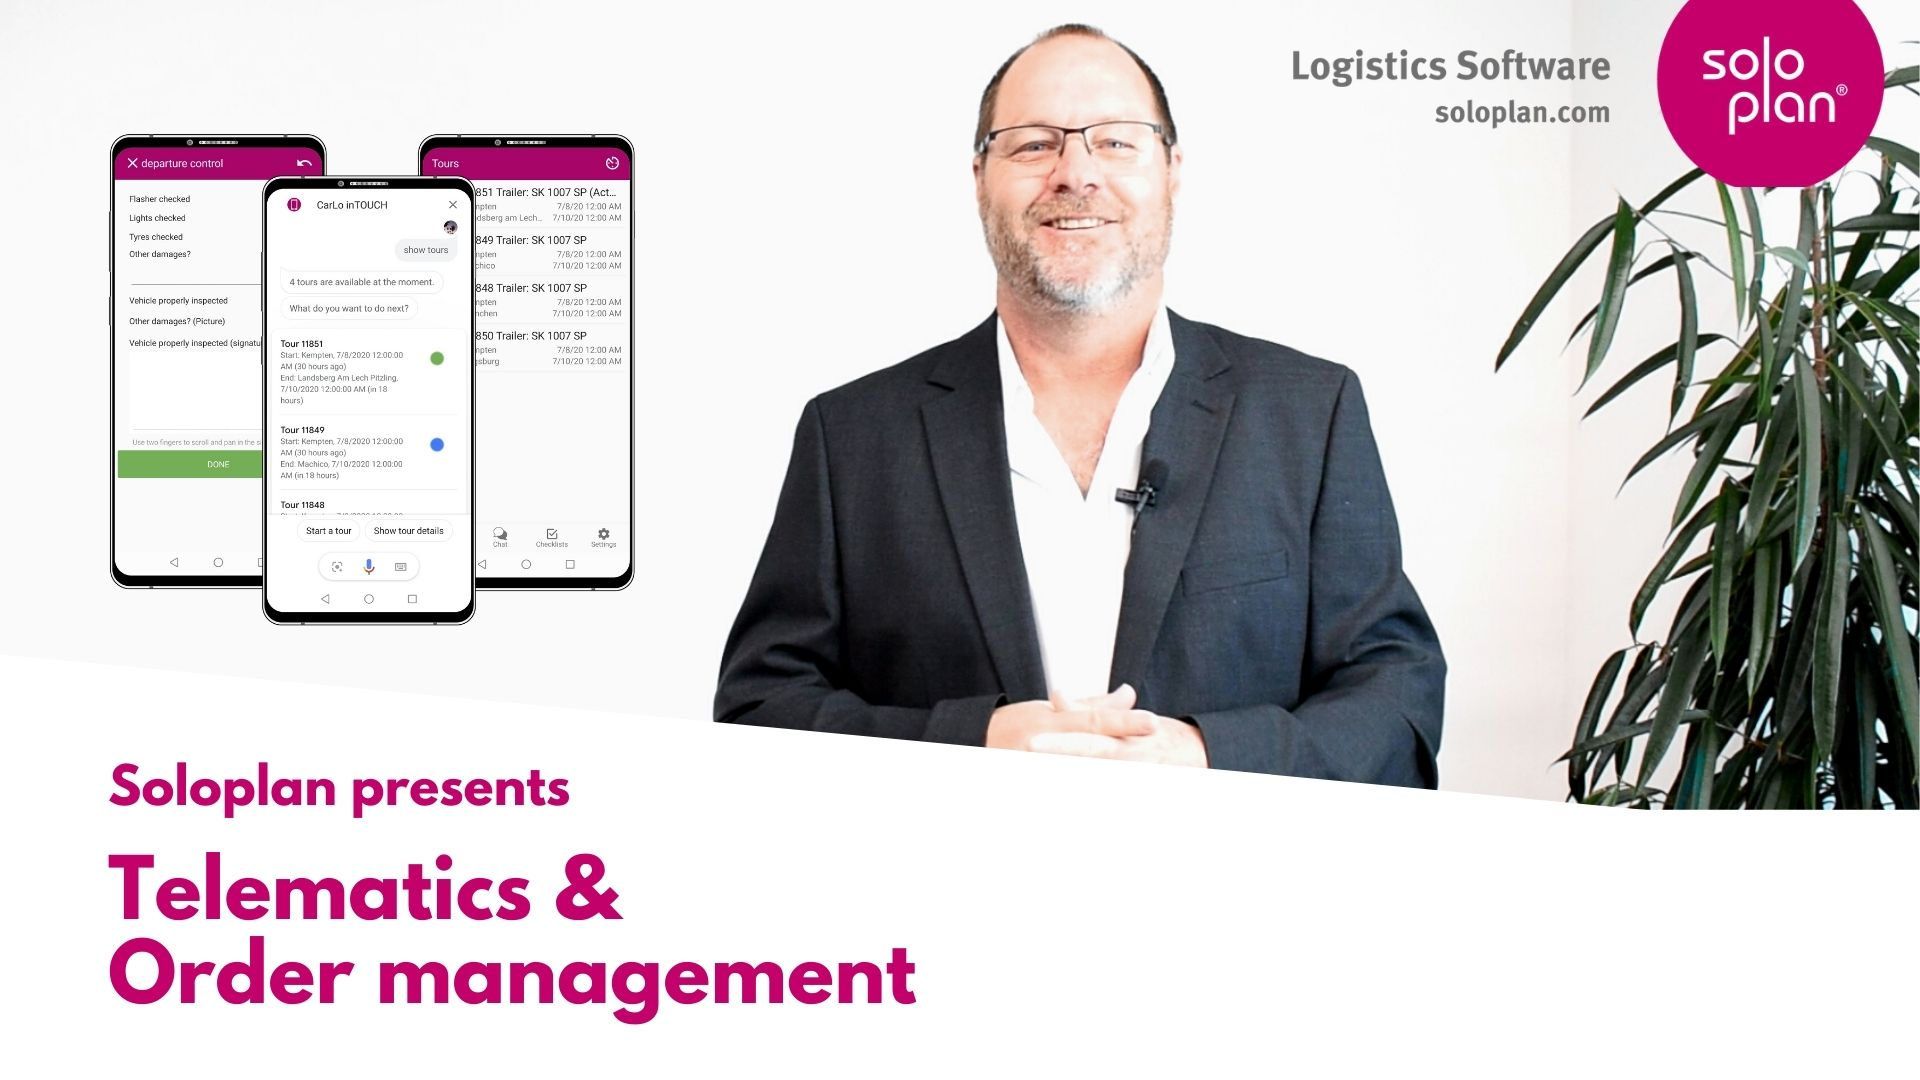 Telematics system & Order management